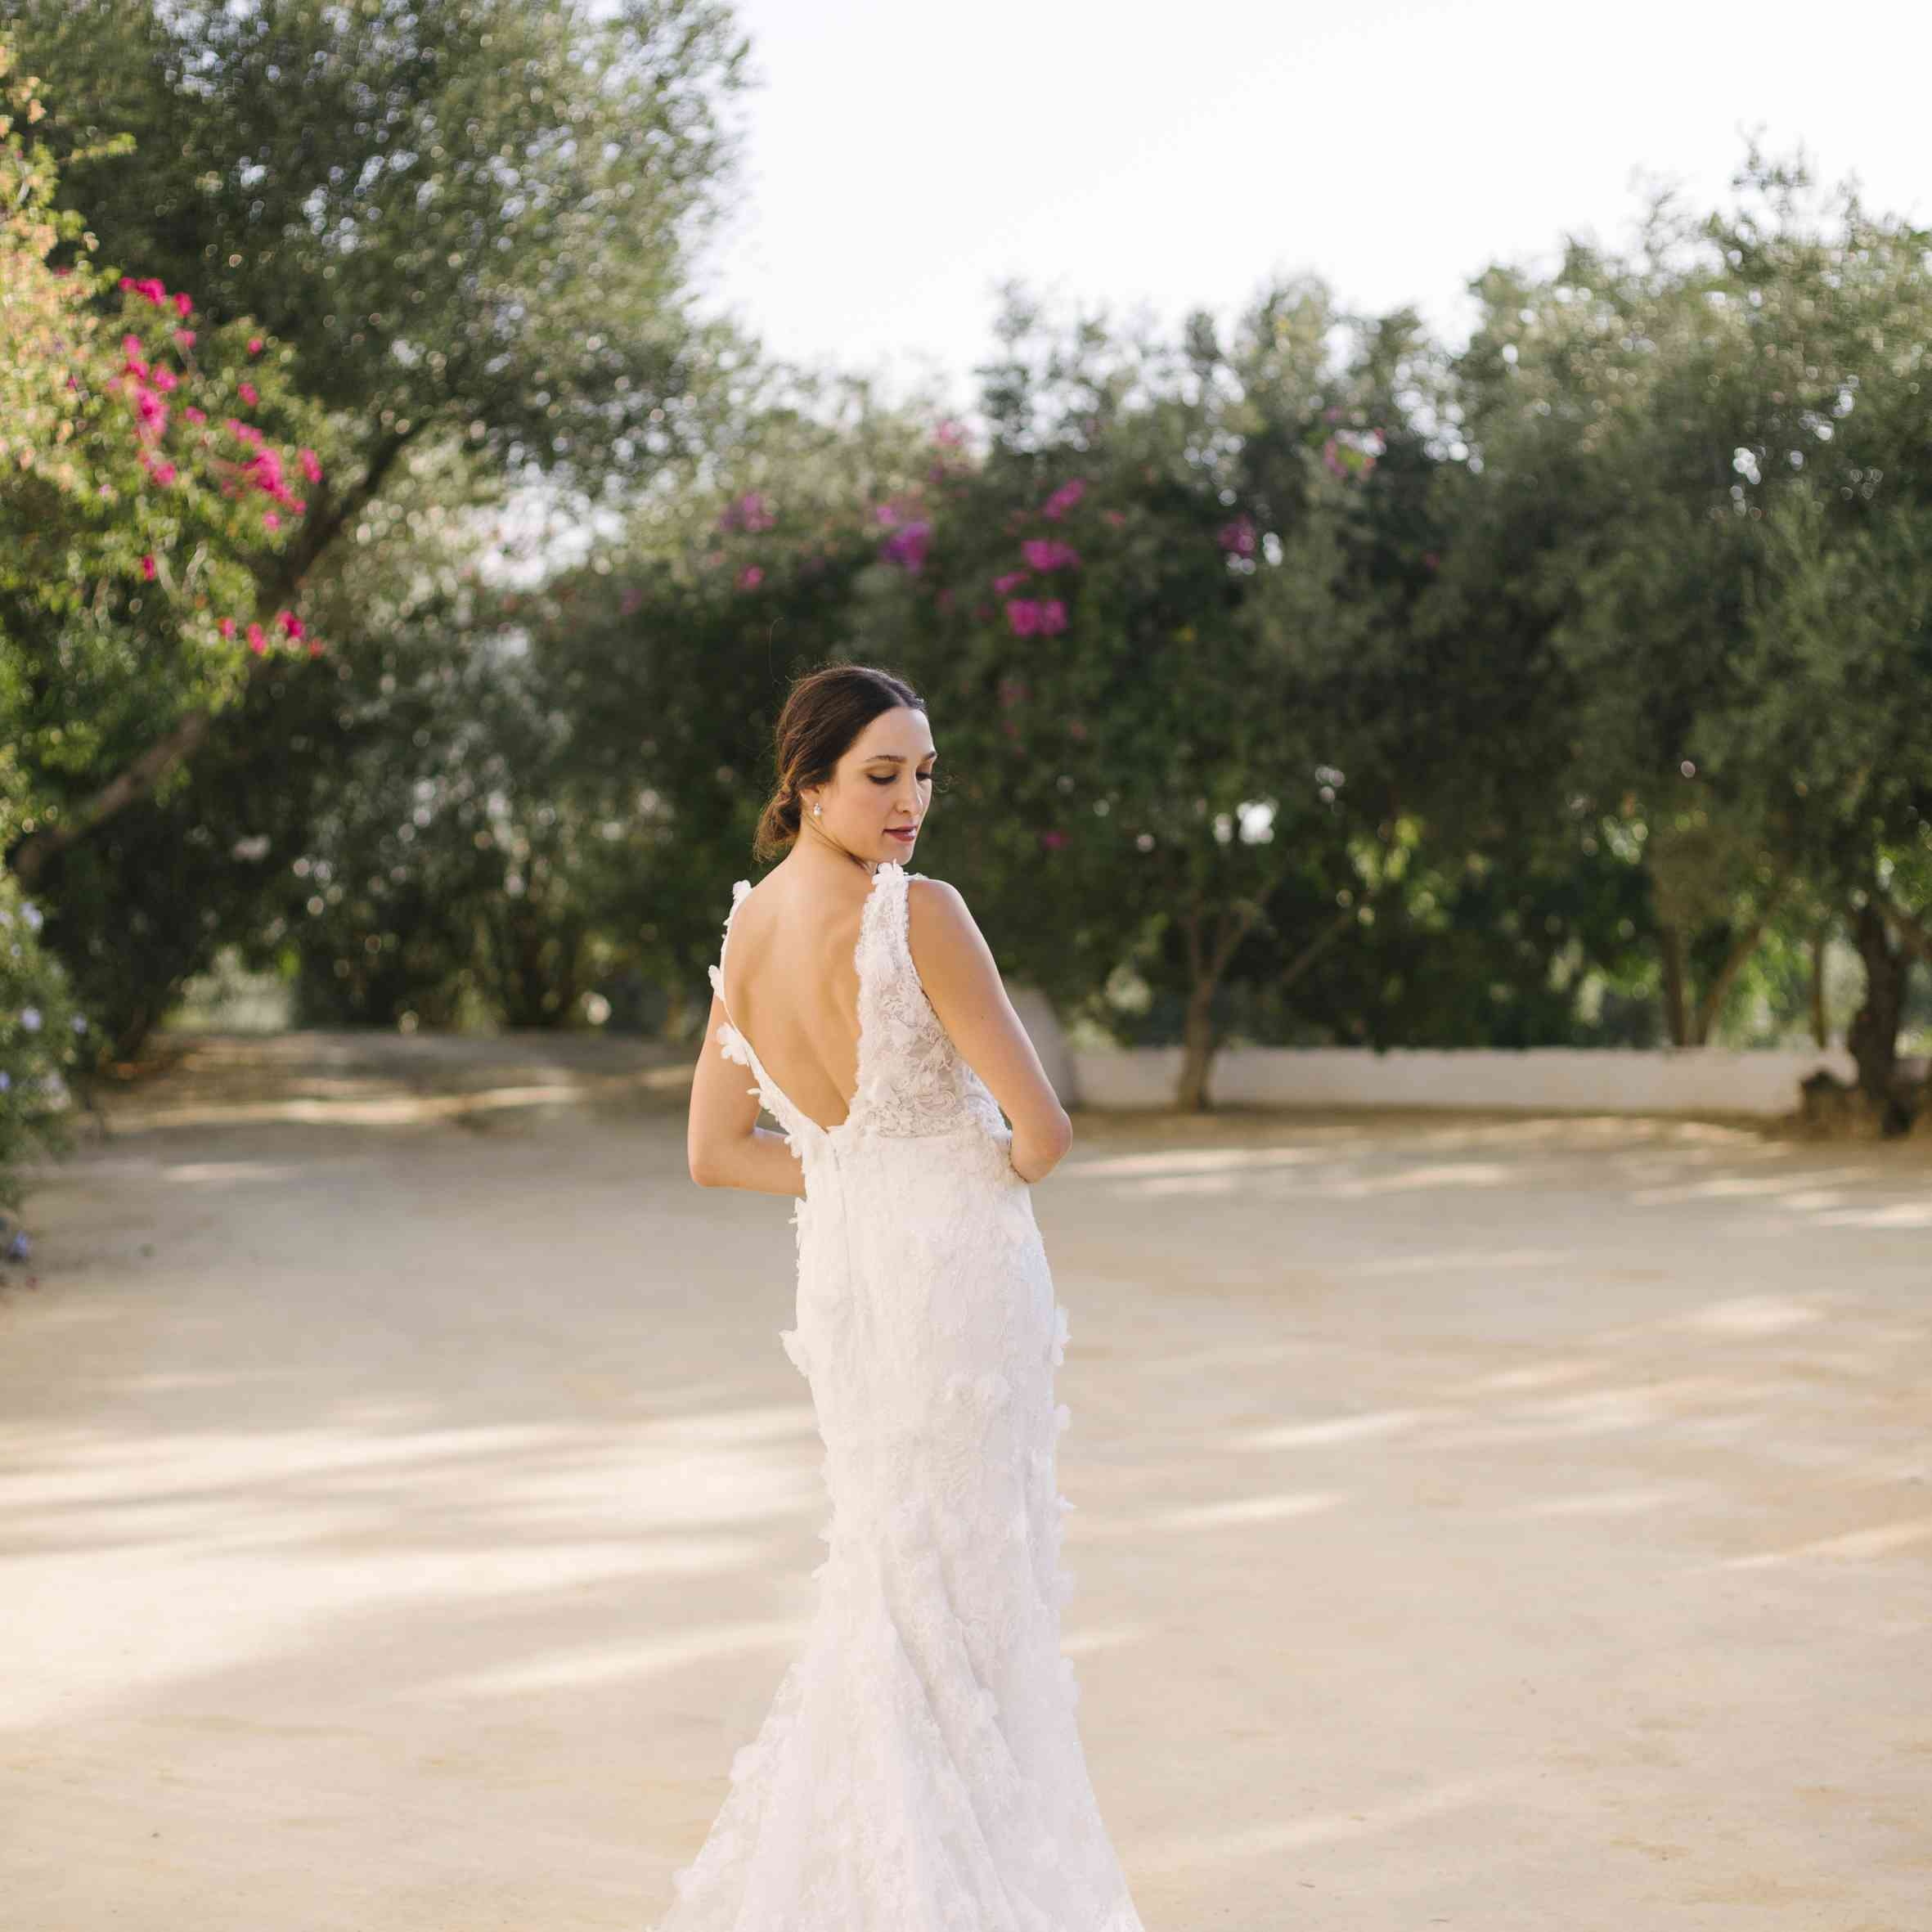 Solo shot of bride in gown